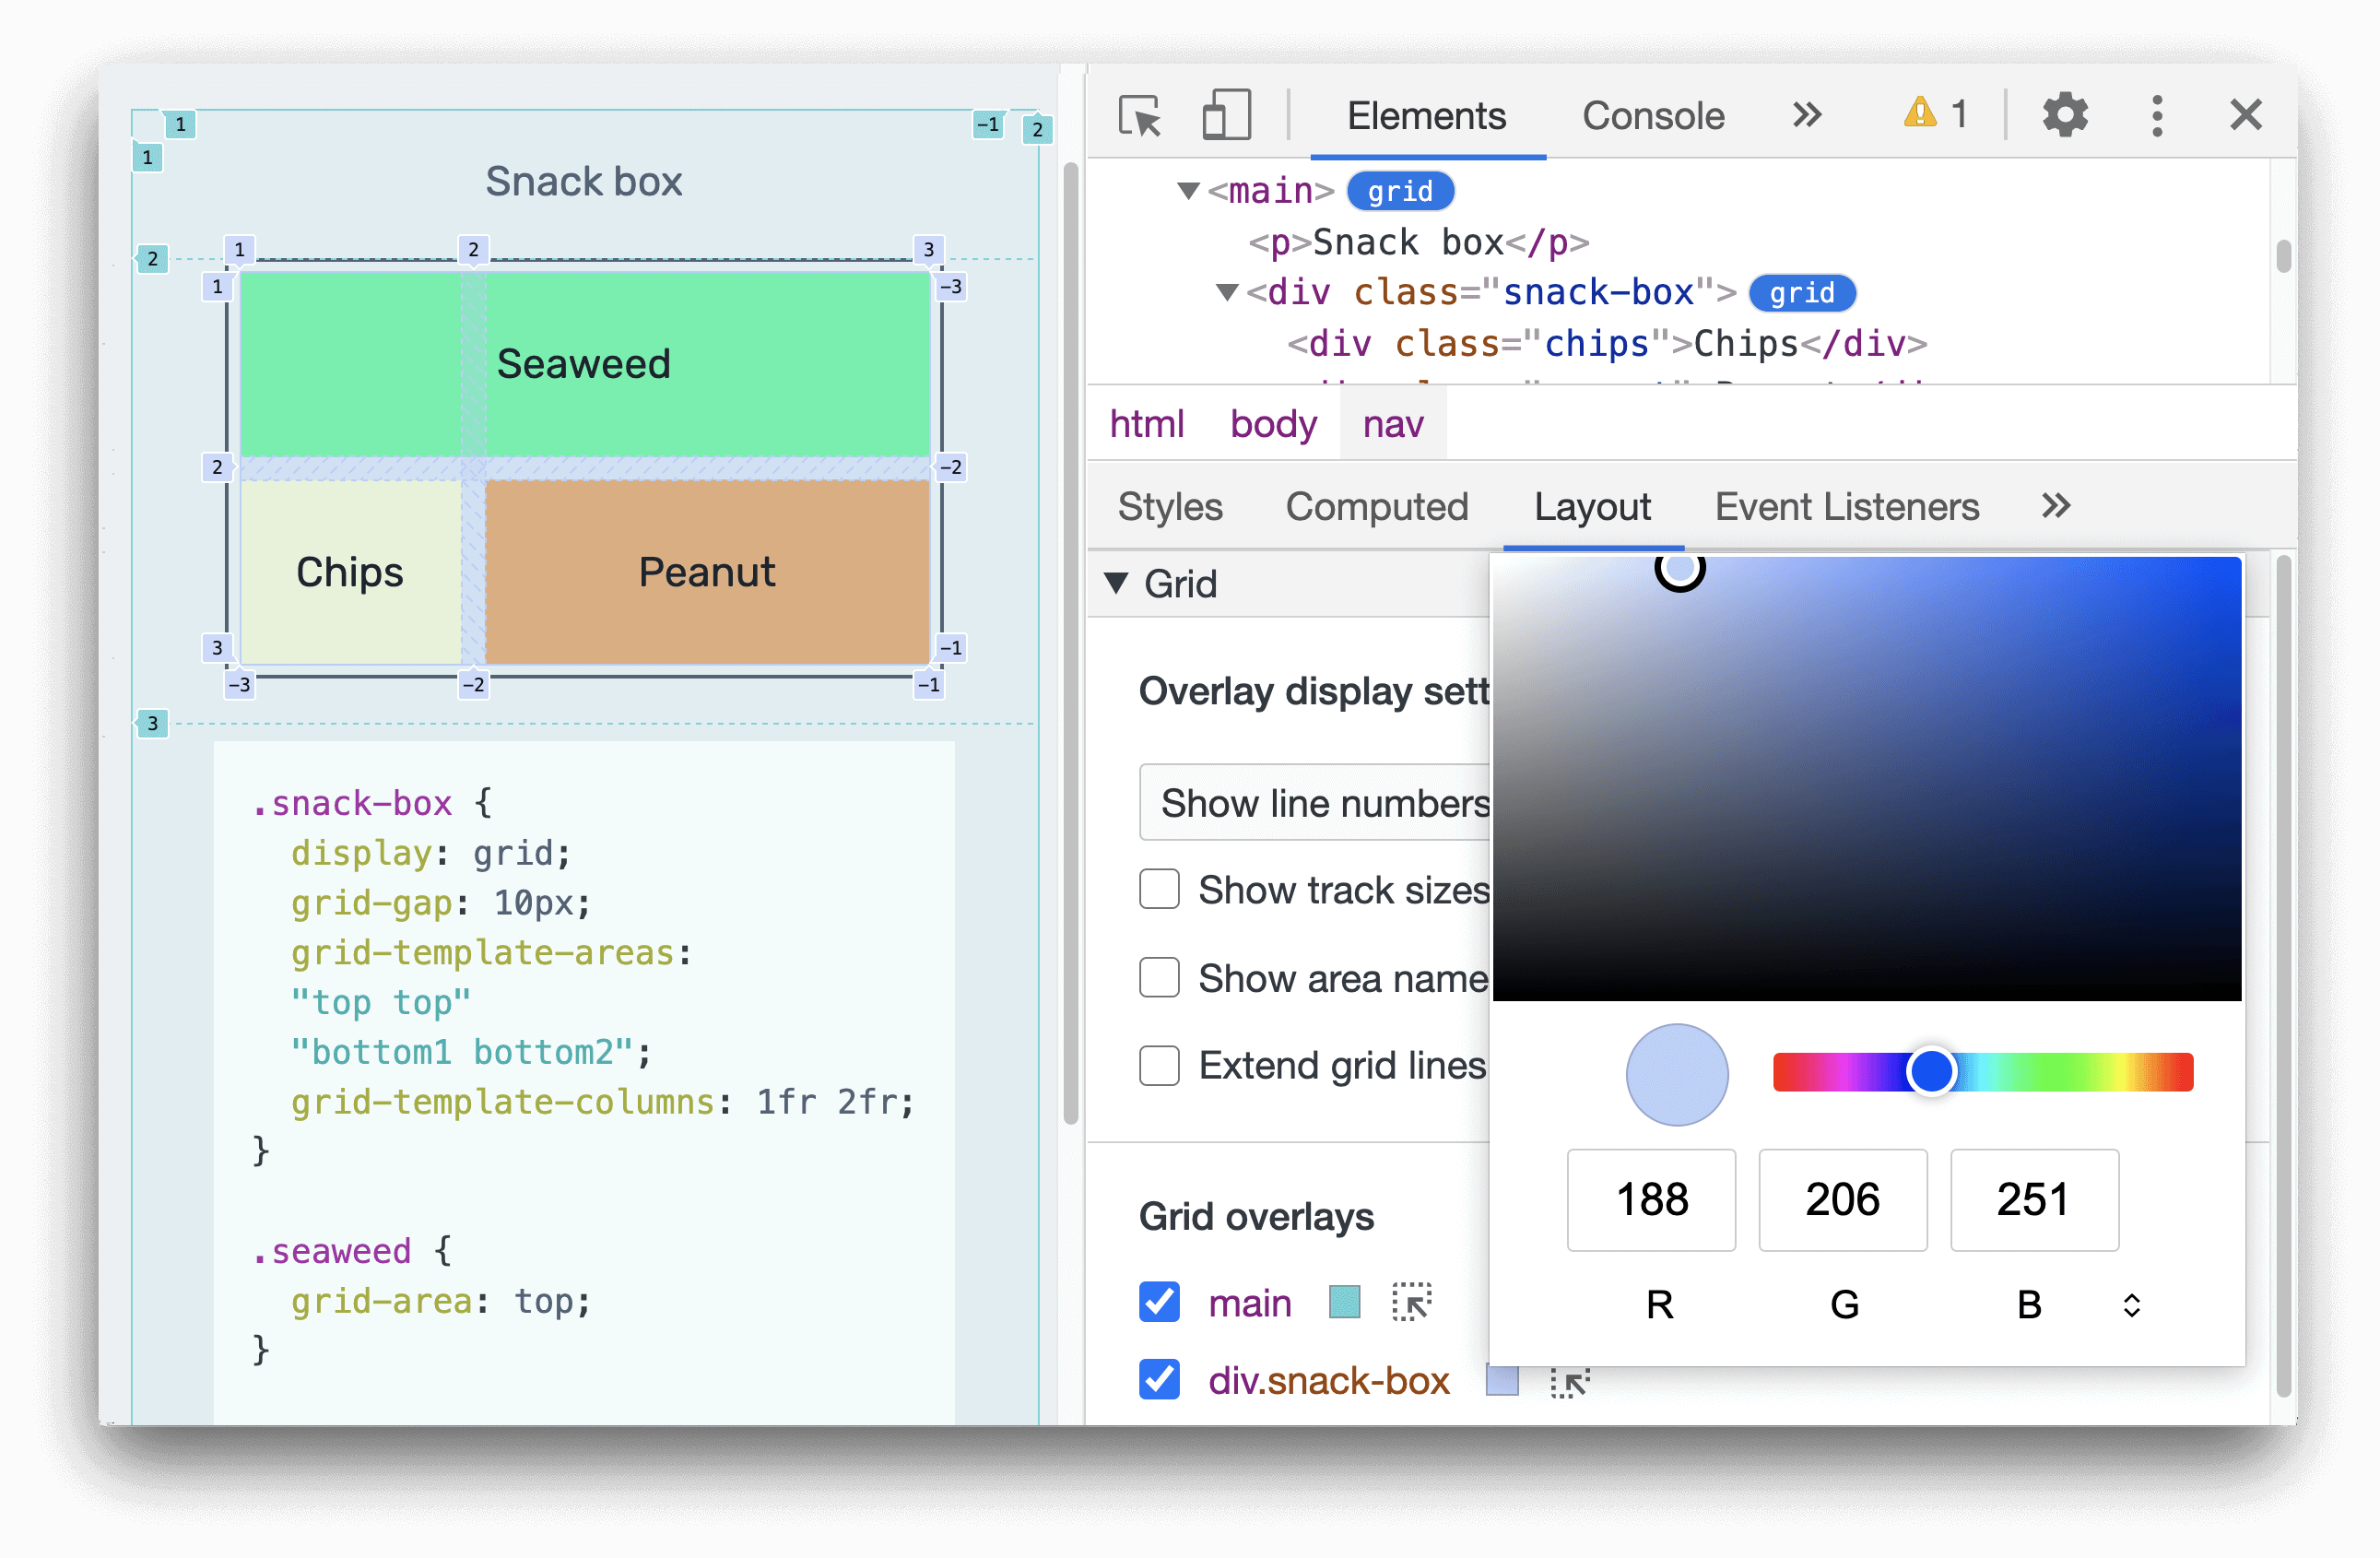 Customize the grid overlay color